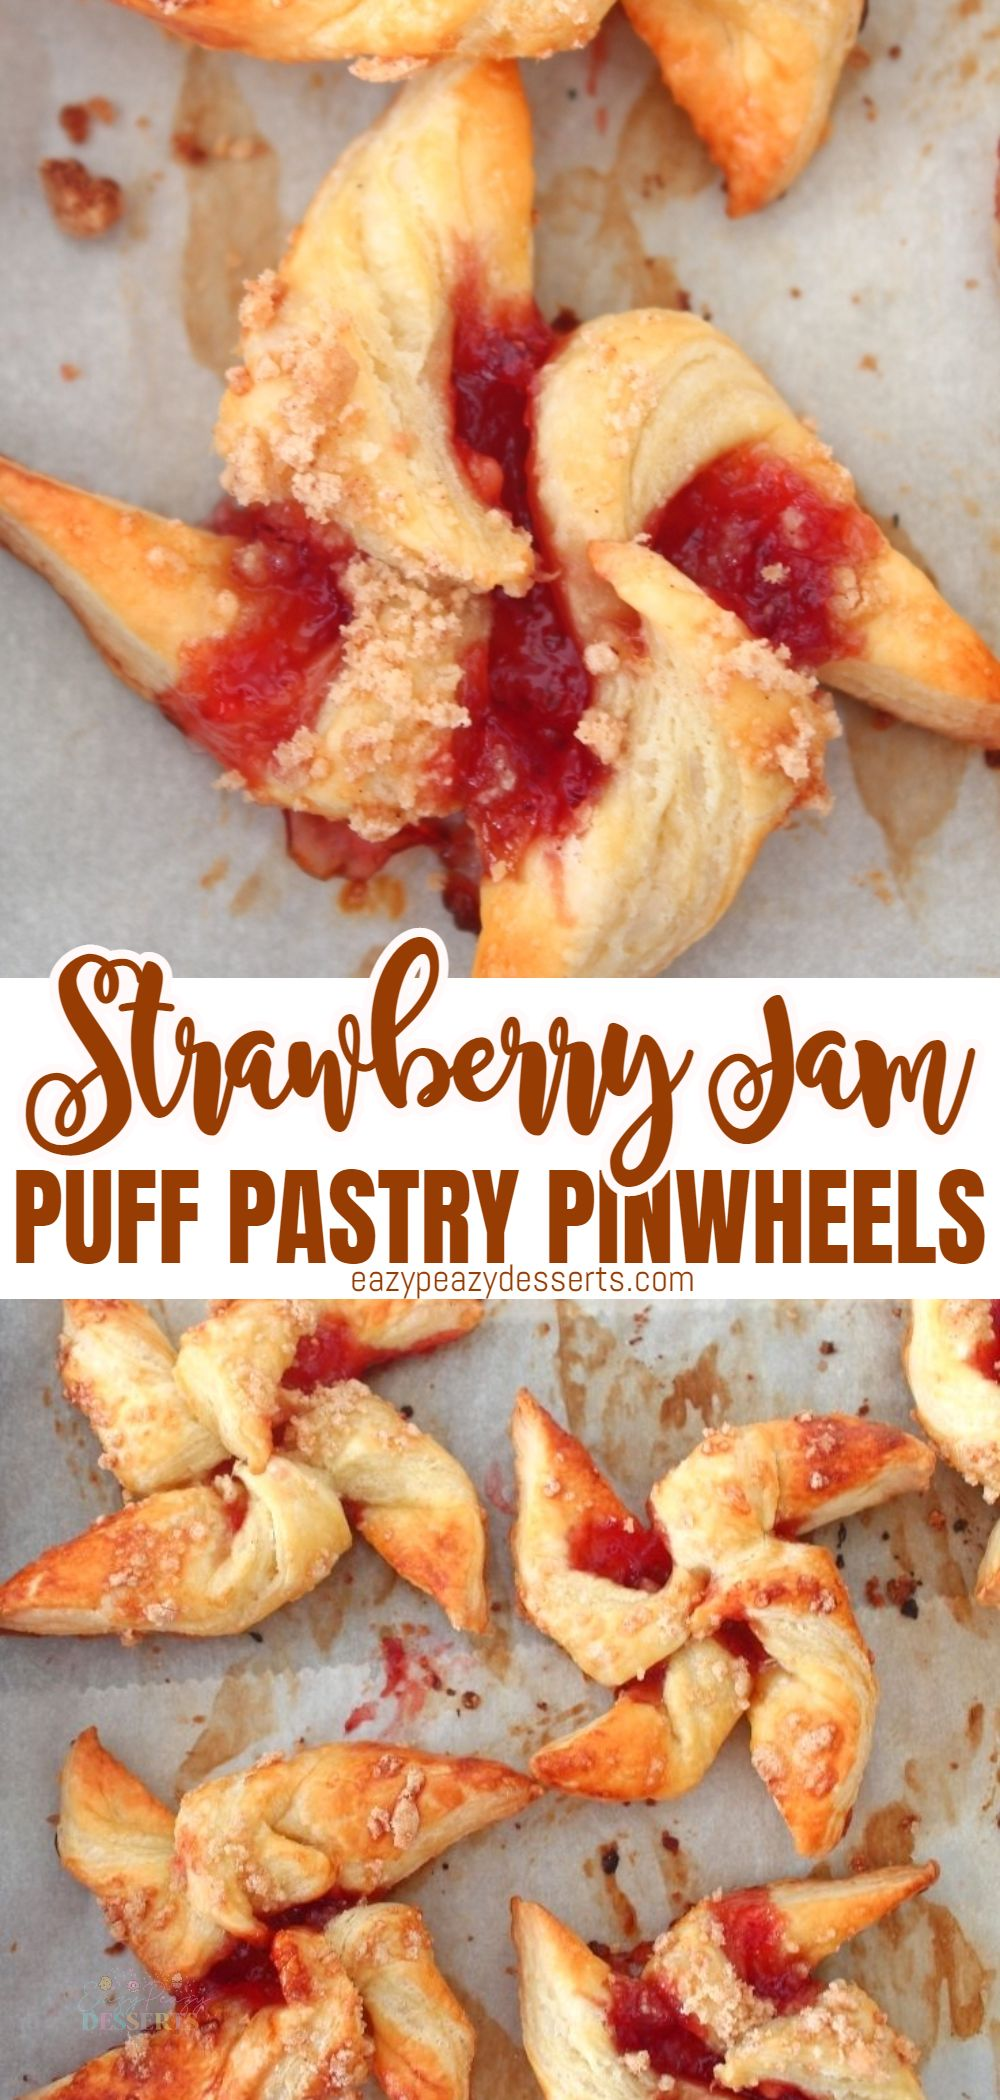 Having a party and didn't have time to make a dessert? This strawberry puff pastry recipe will save you: these delicious puff pastry pinwheels made with strawberry jam are incredibly easy and quick to make, only uses three ingredients and bake in no-time. The perfect last-minute dessert! via @eazypeazydesserts